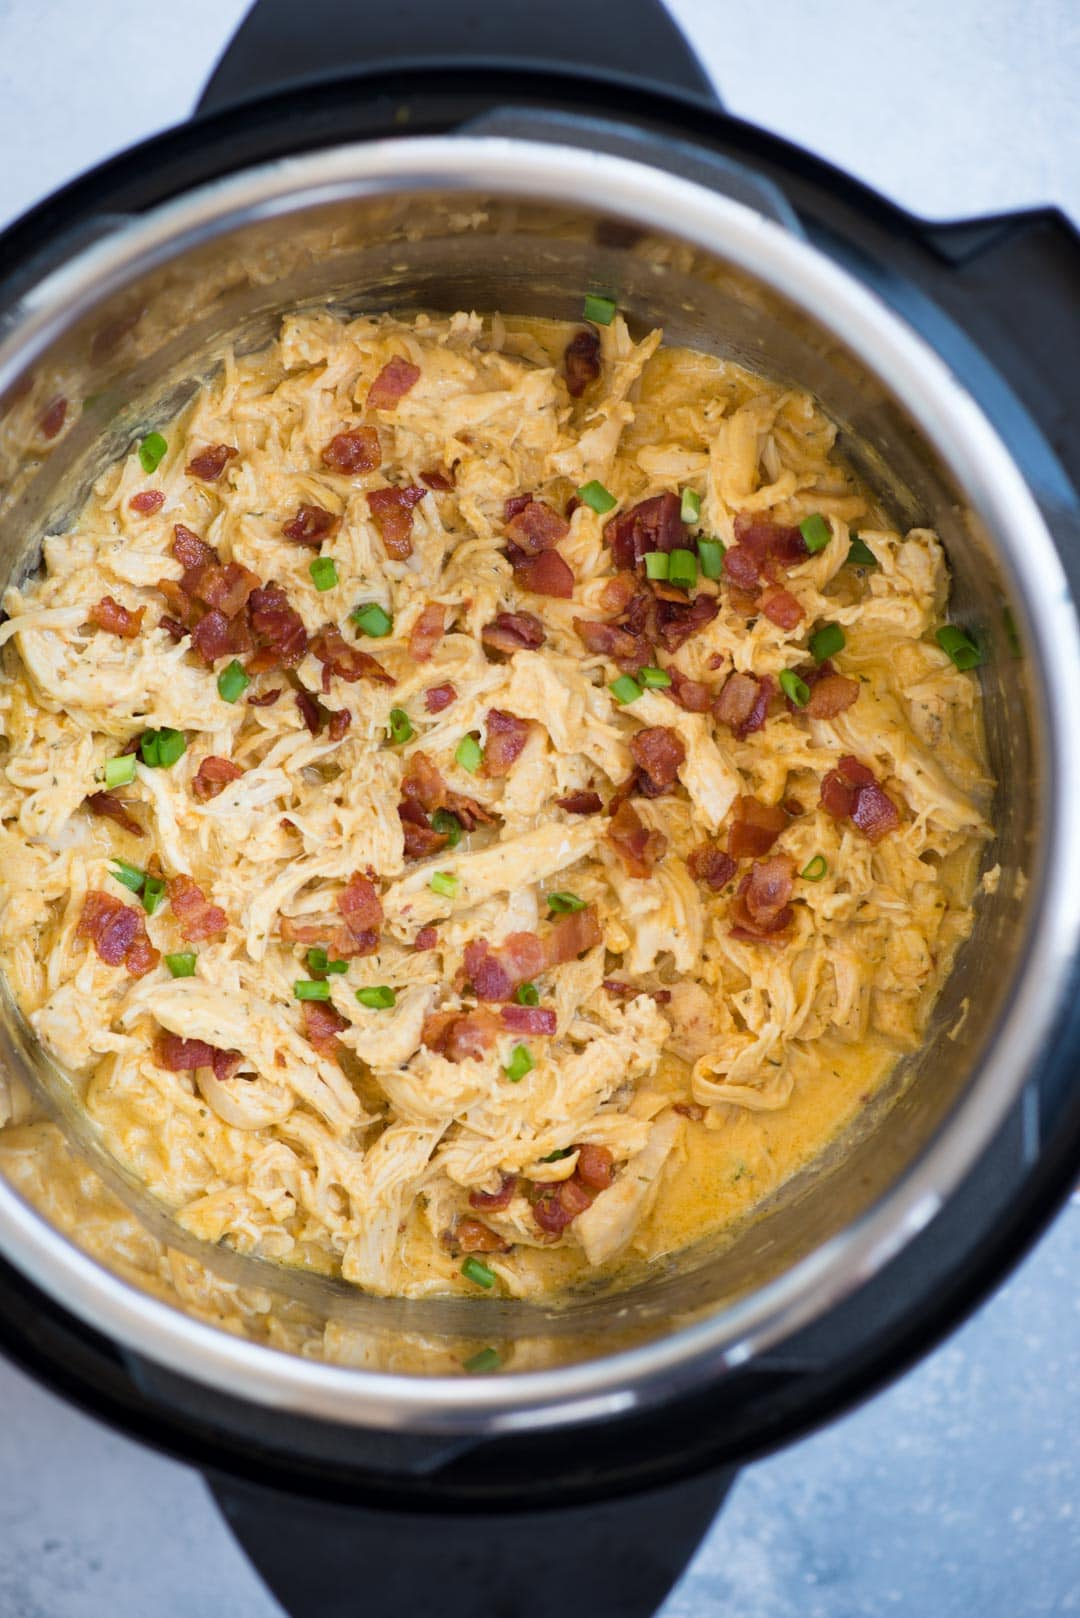 Instant Pot Crack chicken made with Chicken, Ranch Seasoning, cream cheese, Cheddar cheese and crispy bacon is incredibly delicious. This low carb, Keto chicken takes only 10 minutes to make.